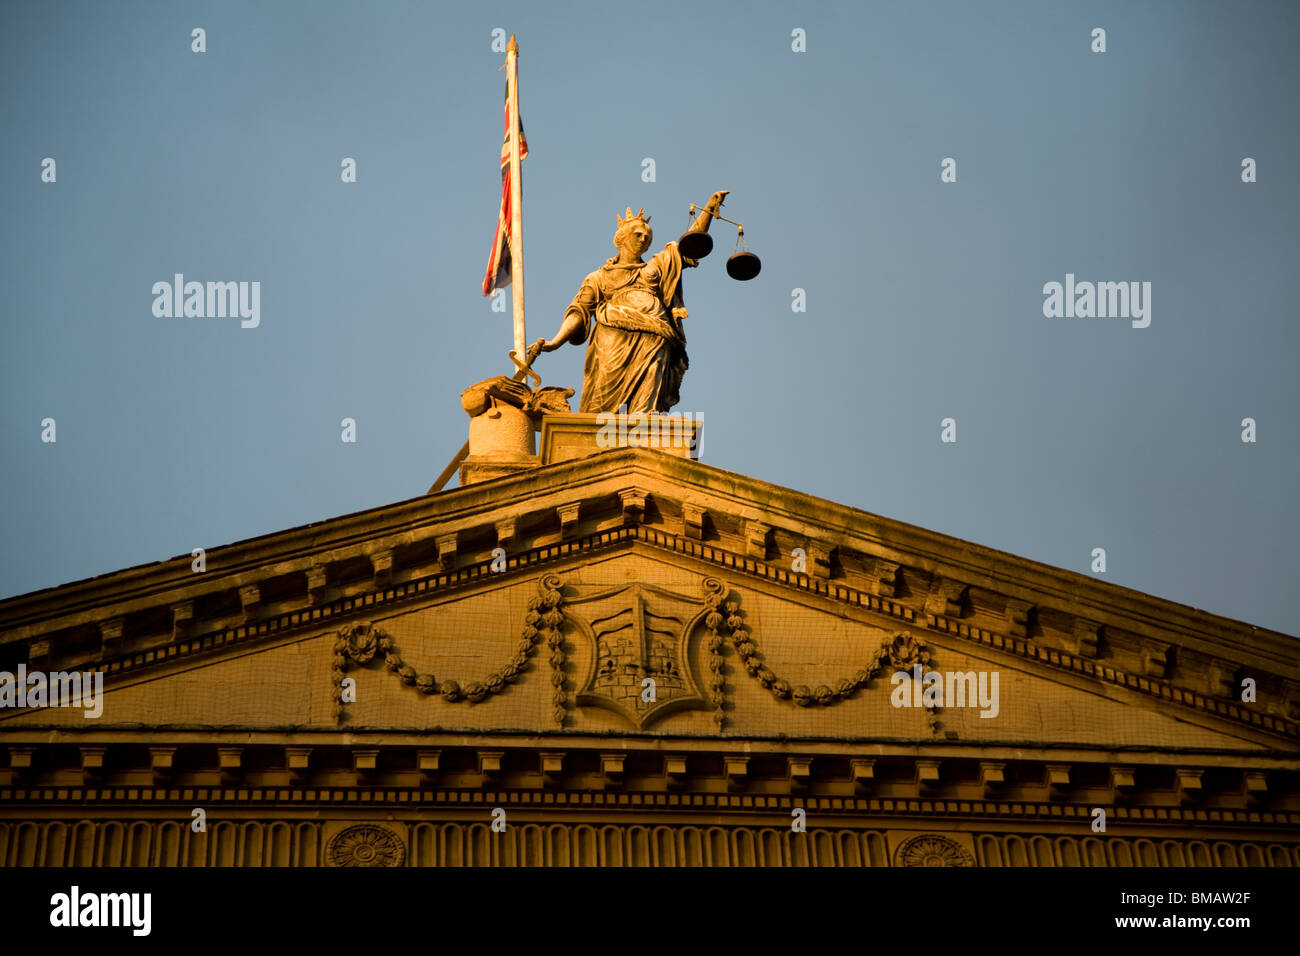 Scales of Justice on Guildhall, Bath - Stock Image